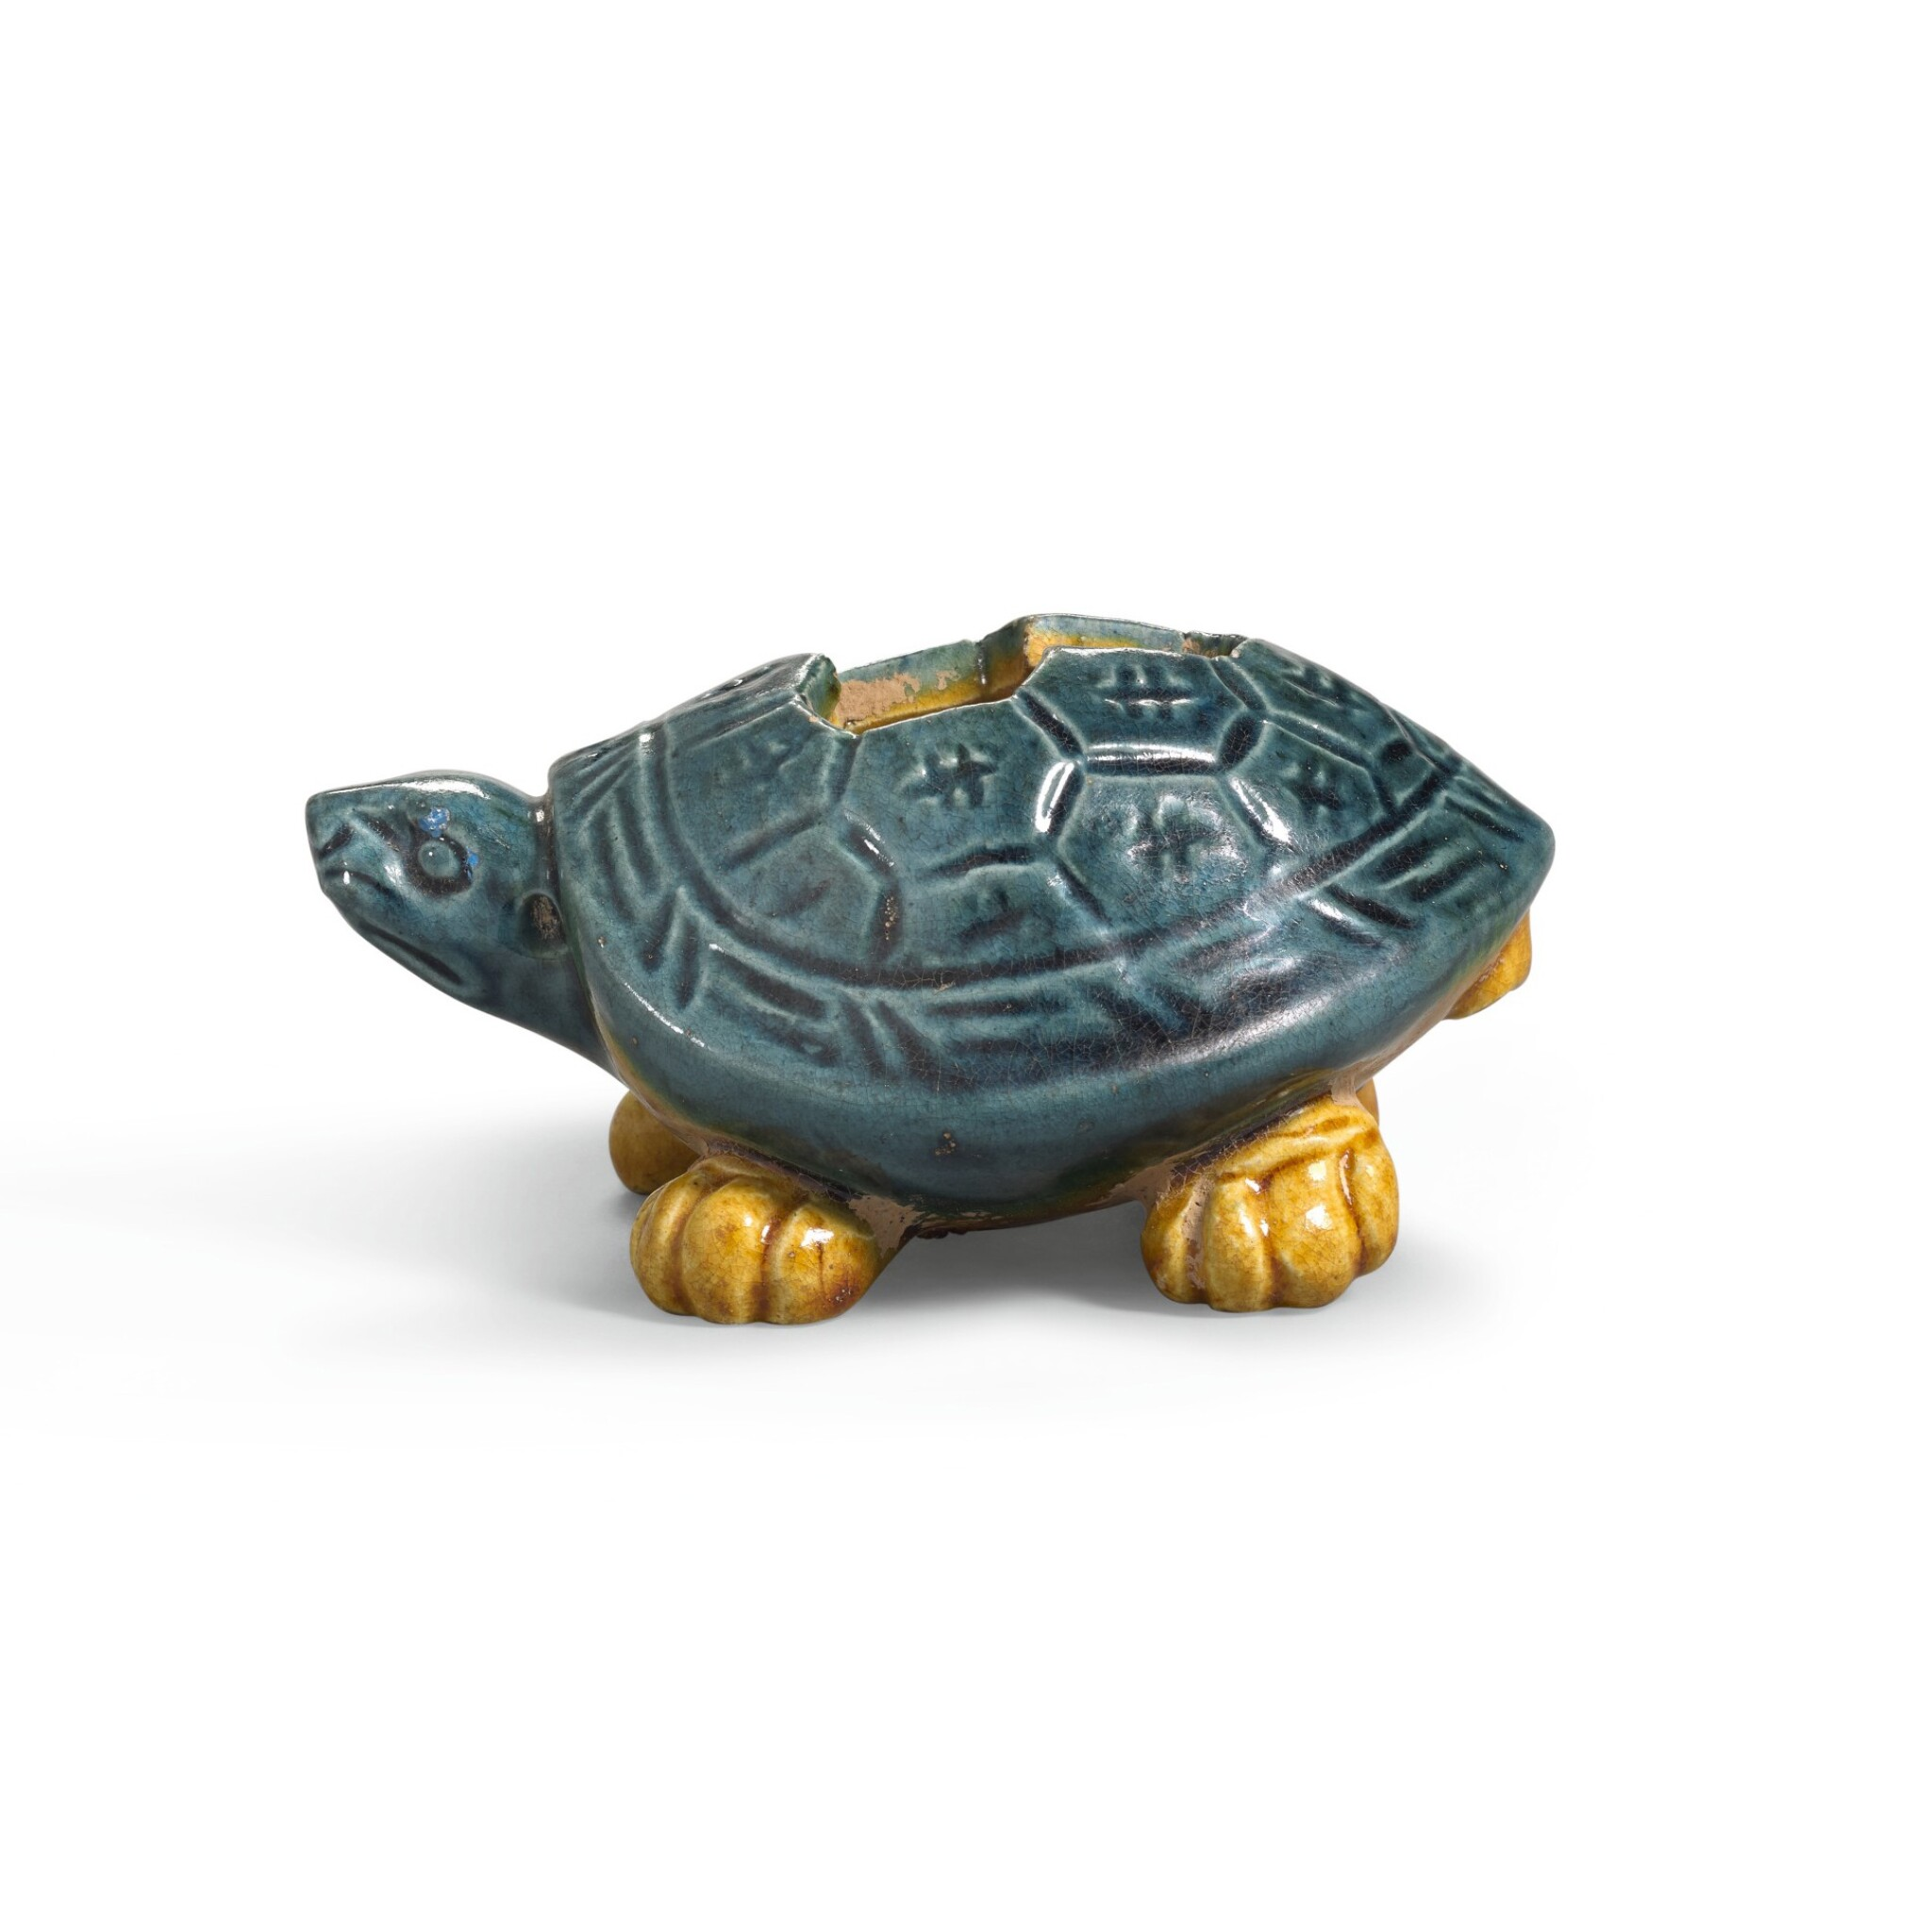 View full screen - View 1 of Lot 222. A VERY RARE SMALL BLUE AND AMBER-GLAZED 'TORTOISE' WATERPOT TANG DYNASTY | 唐 藍釉加黃彩龜形水注.